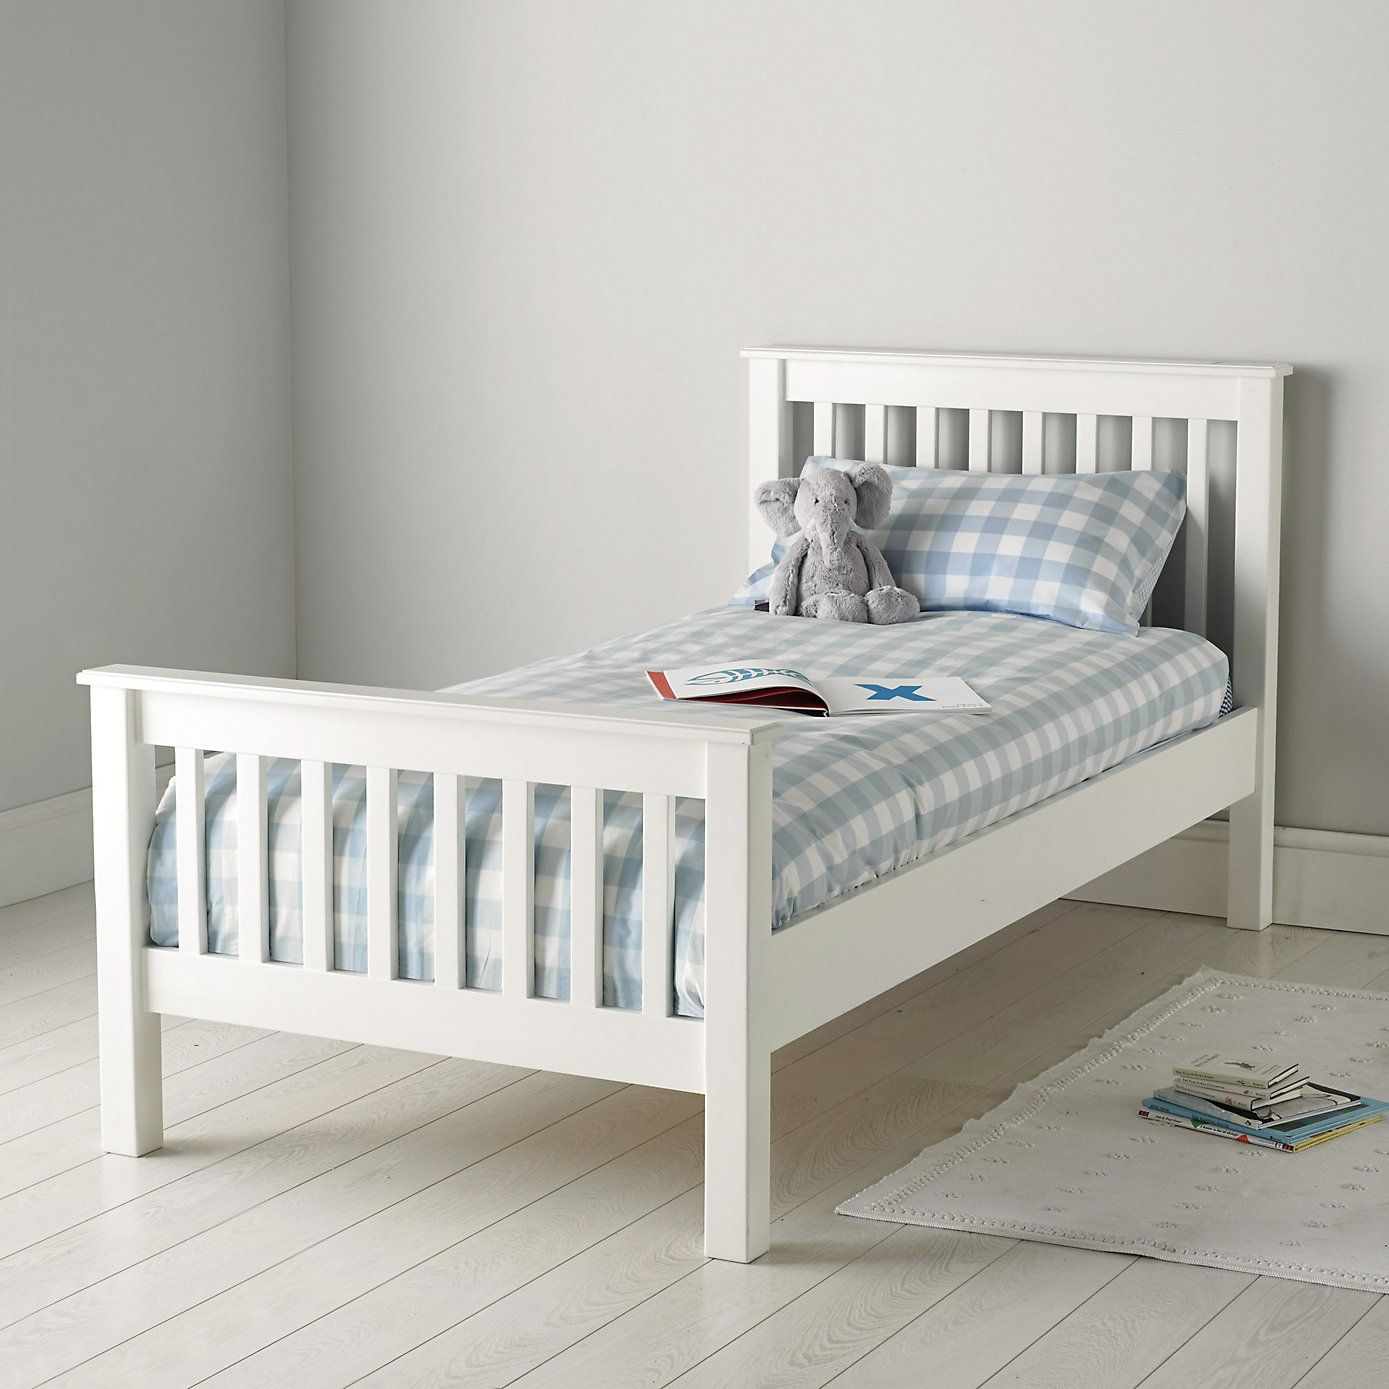 classic single bed from the white